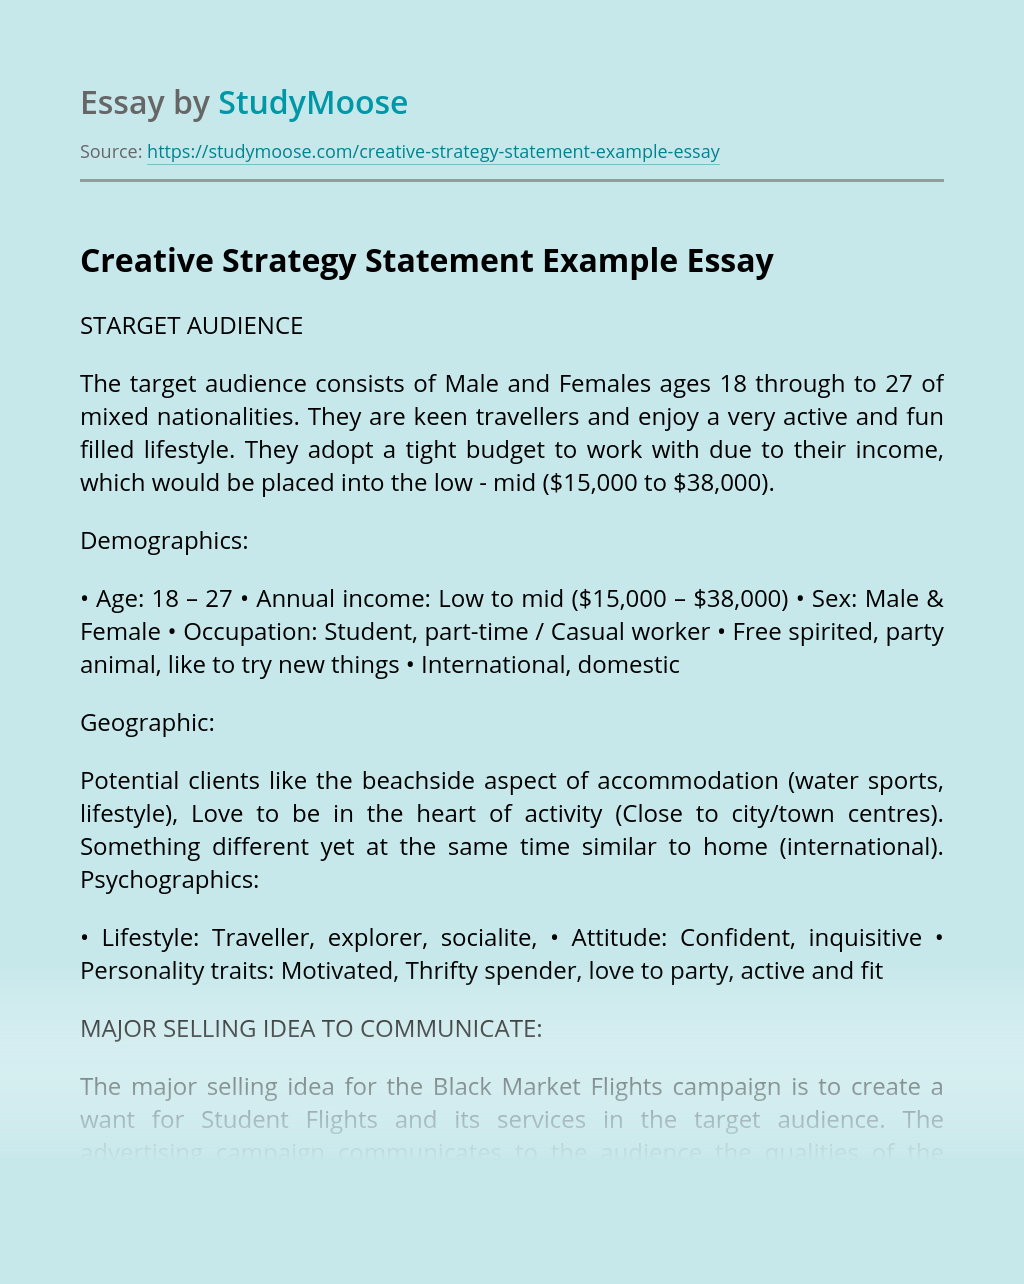 Creative Strategy Statement Example